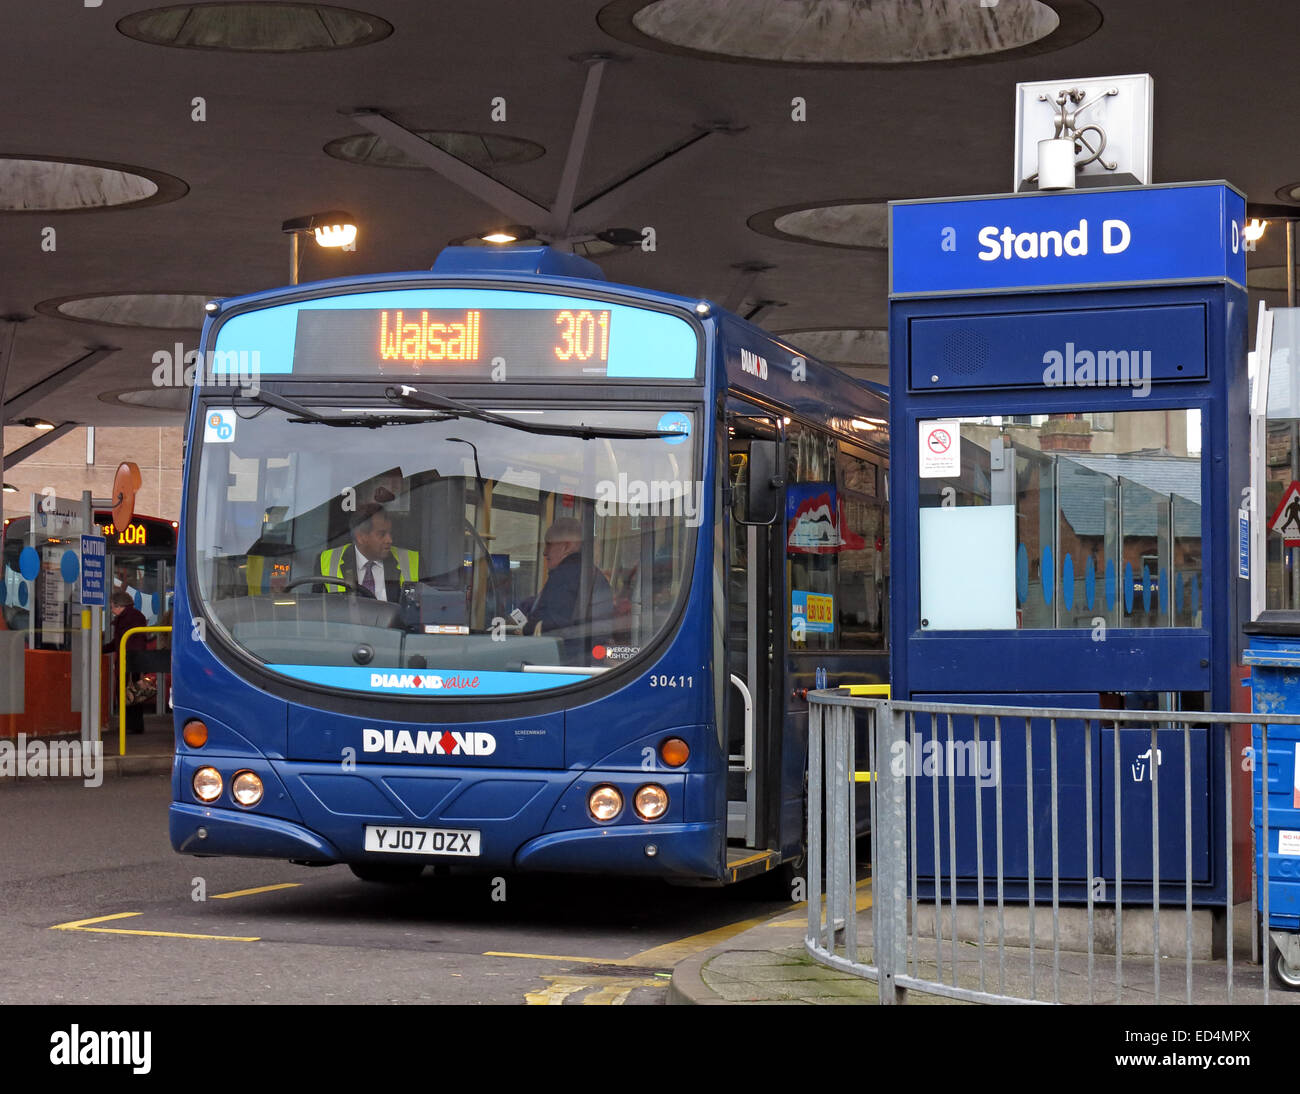 NXWM Walsall Bus Station St Pauls Street Stand D with 301 Diamond bus - Stock Image